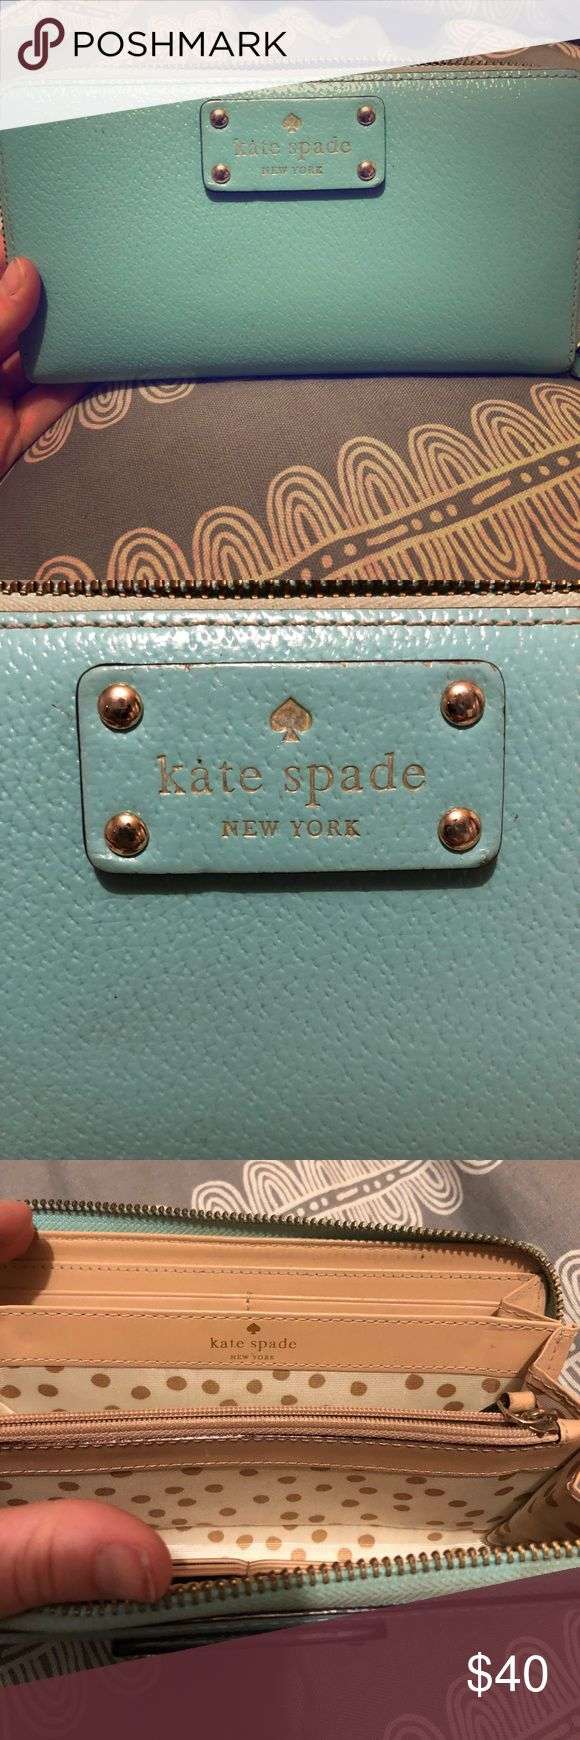 Kate spade teal purse with matching wallet! Wallet, clean. kate spade Bags Crossbody Bags